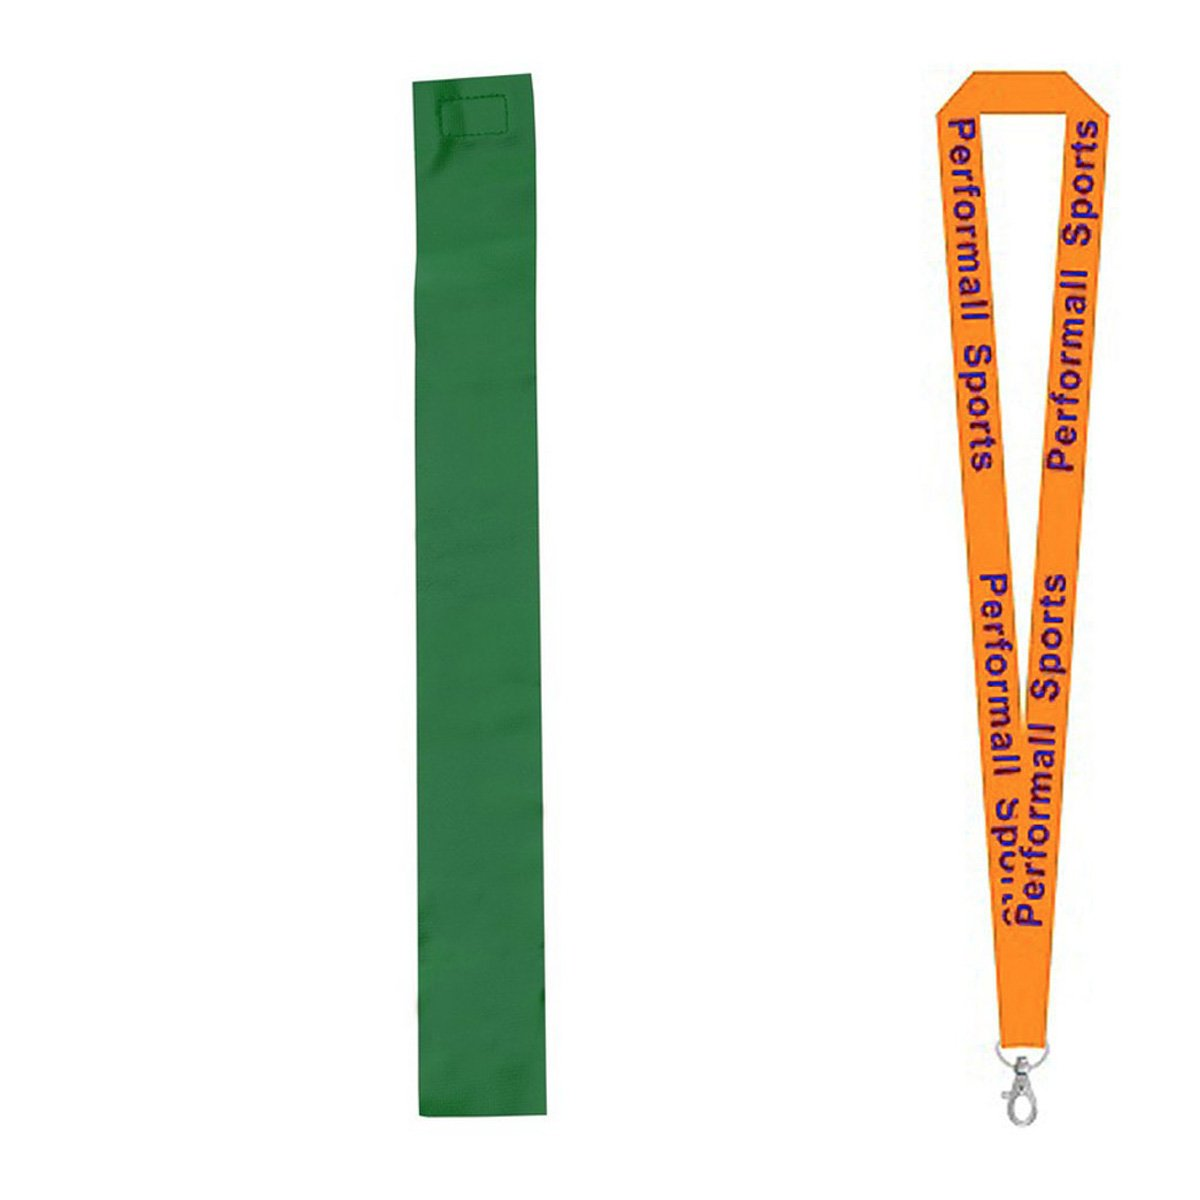 Champion Sports Replacement Flag Assorted Colors Sizes Bundle 1 Performall Lanyard Set of 12